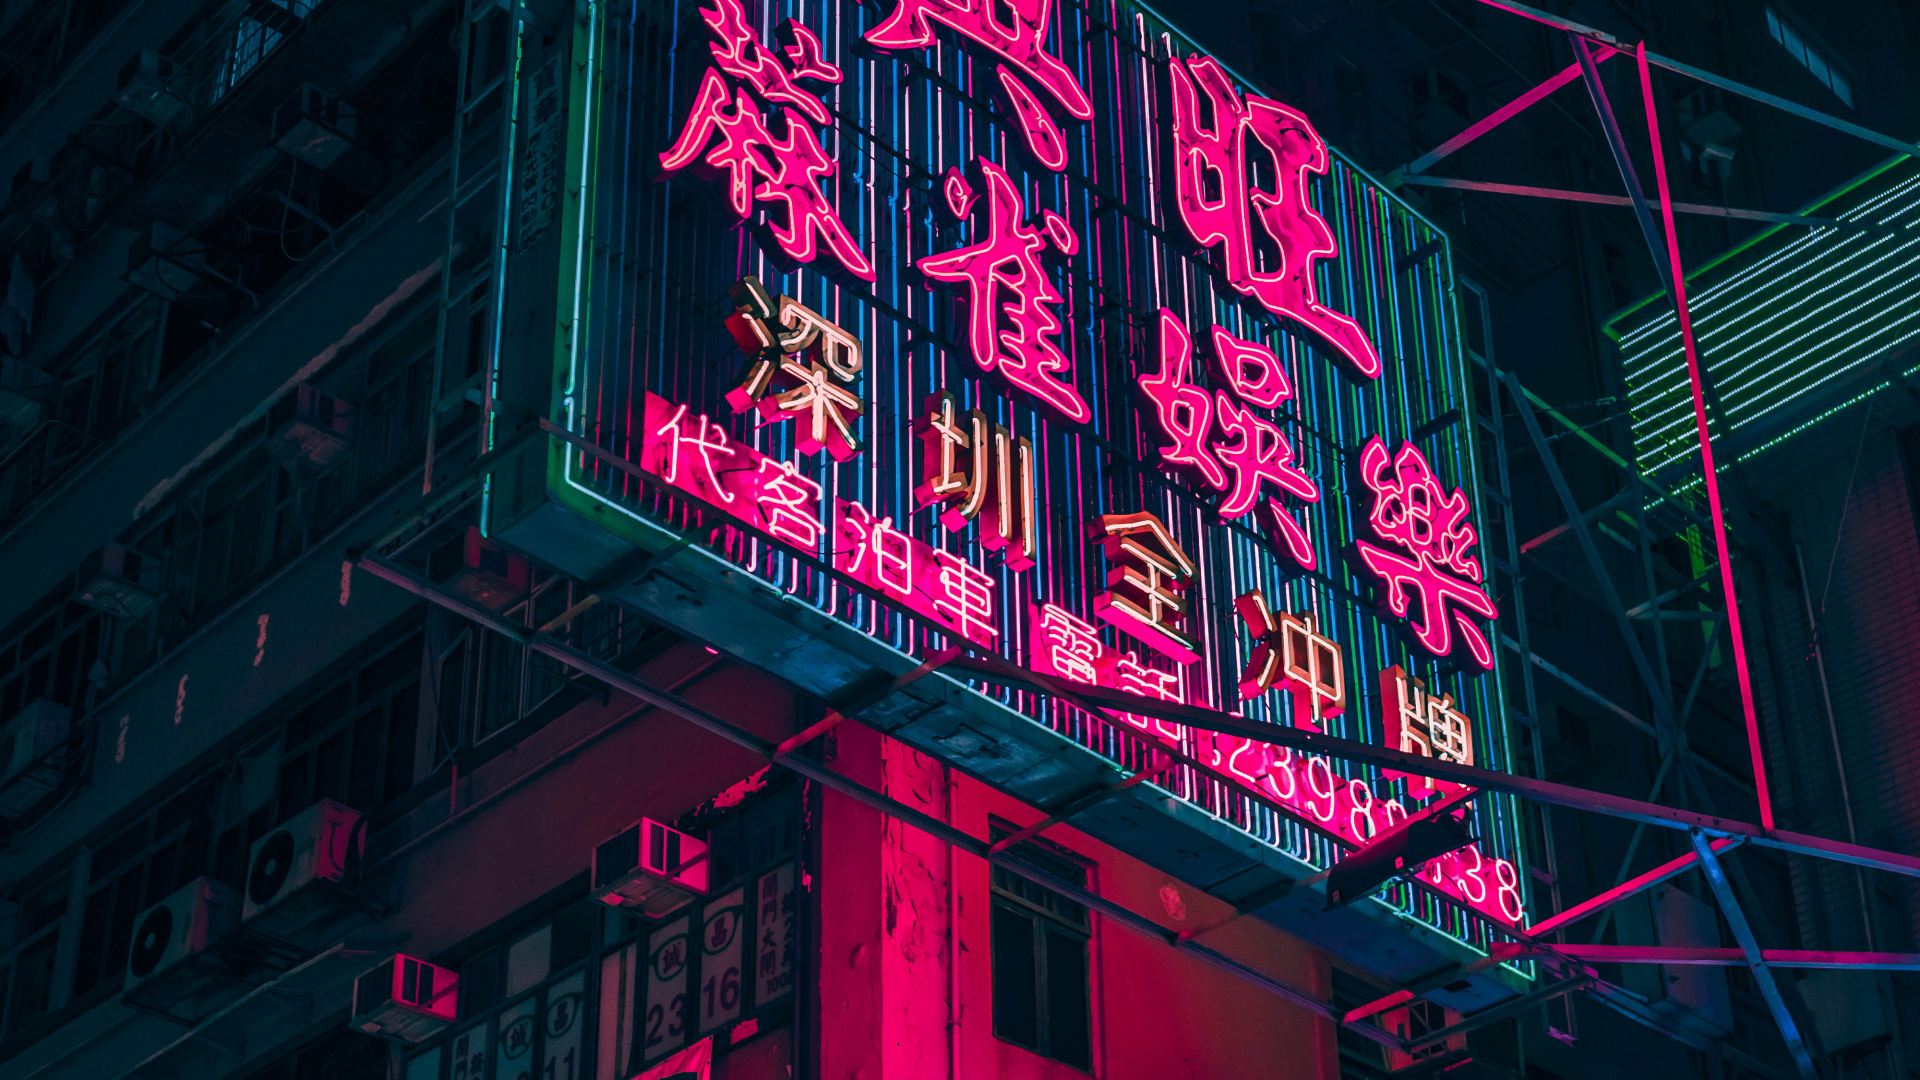 Free Download Hong Kong City Neon City Aesthetic Red Neon Lights Hd 4000x2250 For Your Desktop Mobile Tablet Explore 51 Aesthetic 4k Wallpapers Aesthetic 4k Wallpapers Aesthetic Wallpapers 4k